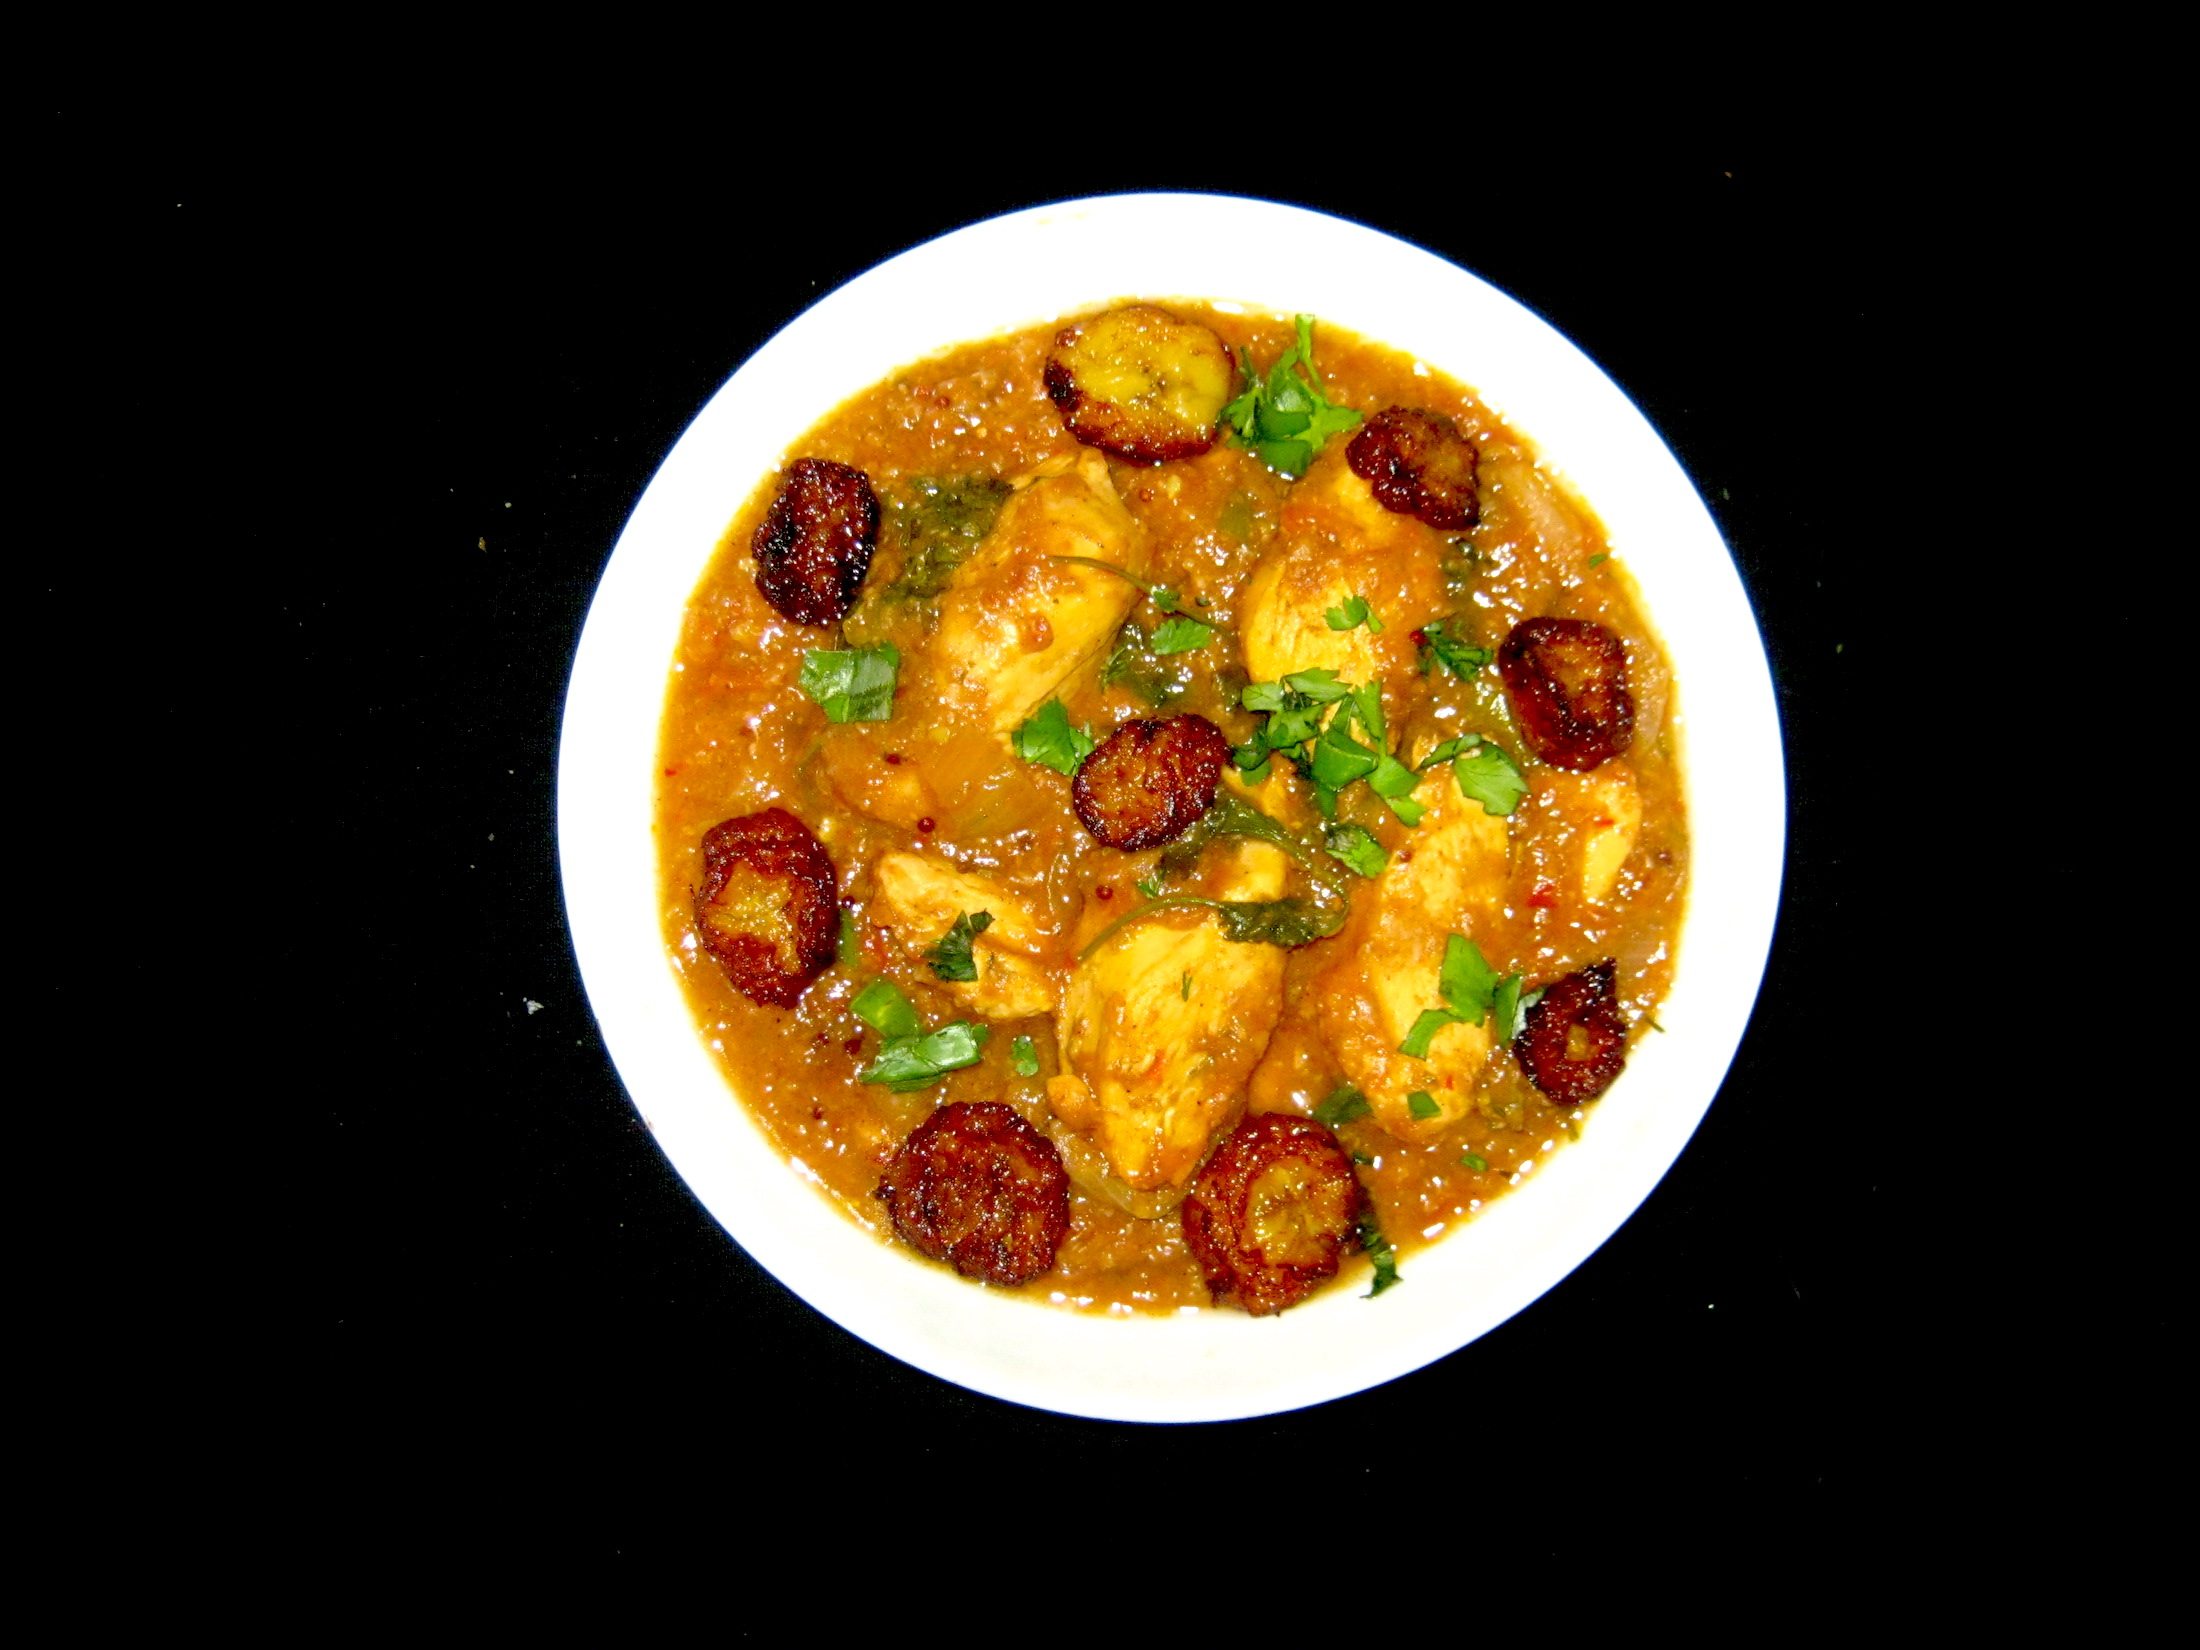 Banana chicken curry in white bowl